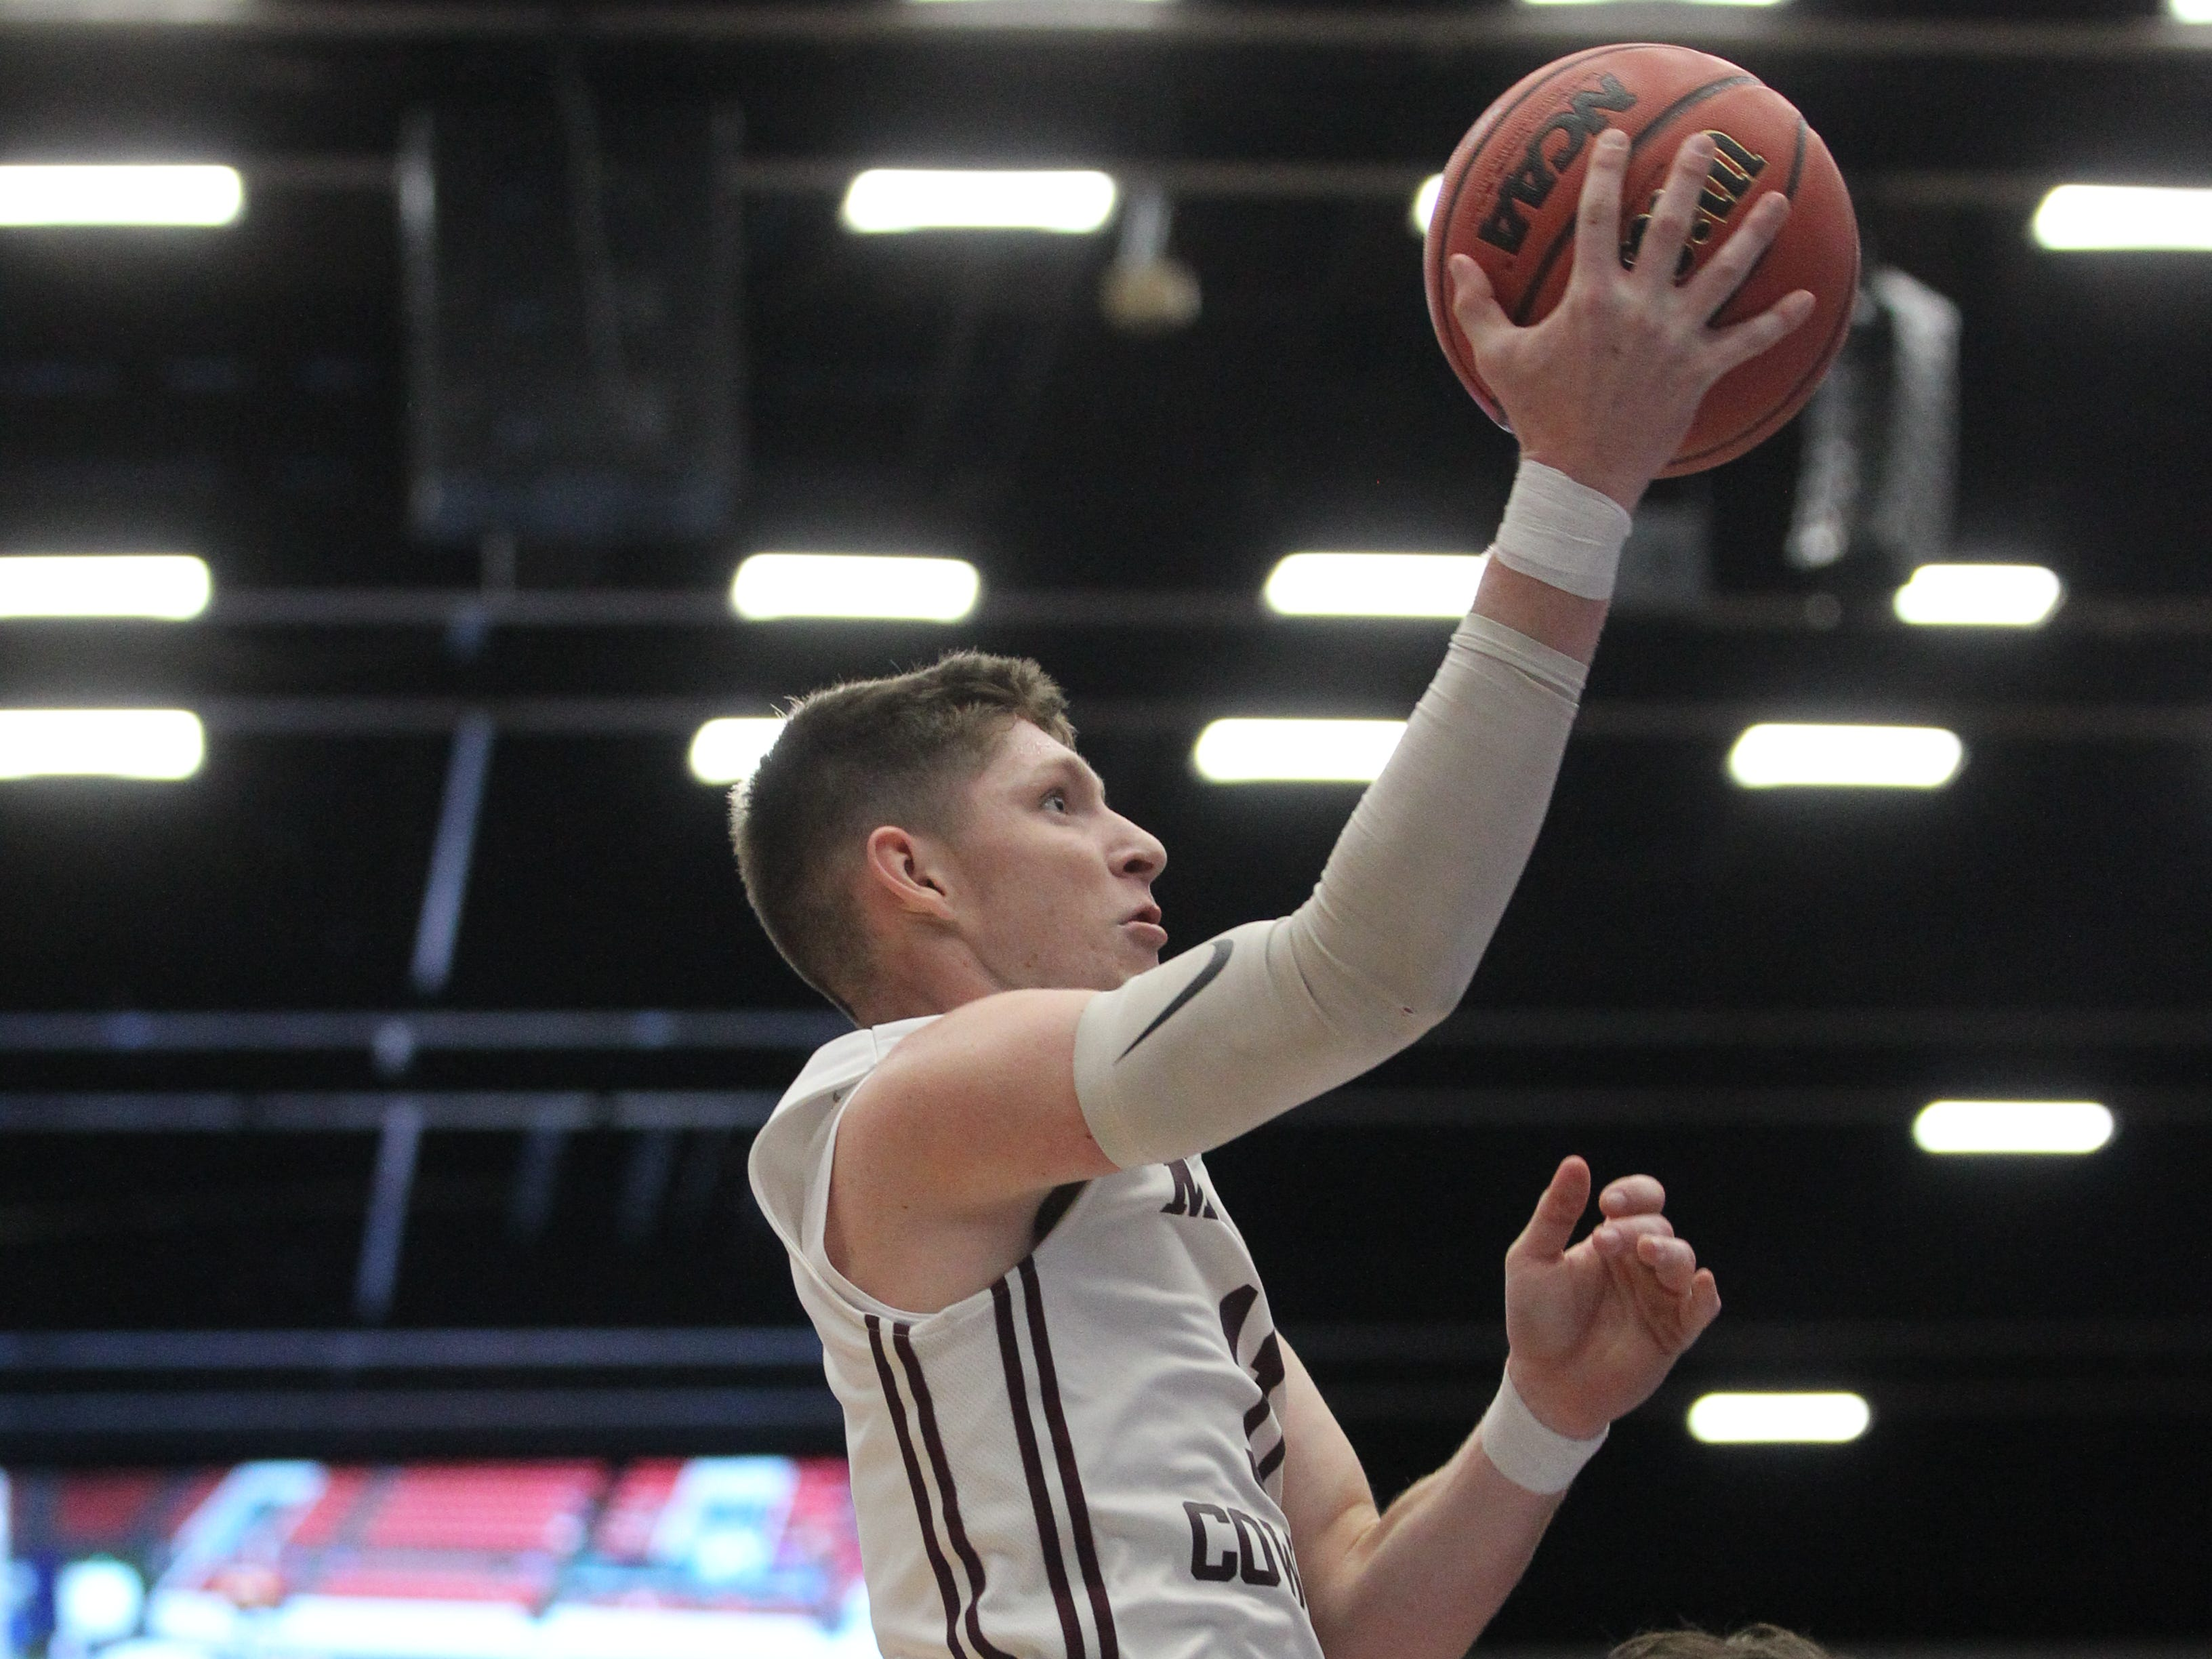 Madison County senior forward Dilan Lawson goes up for a layup and gets fouled as the Cowboys beat Paxton 63-51 during a Class 1A state semifinal at the RP Funding Center in Lakeland on March 4, 2019.